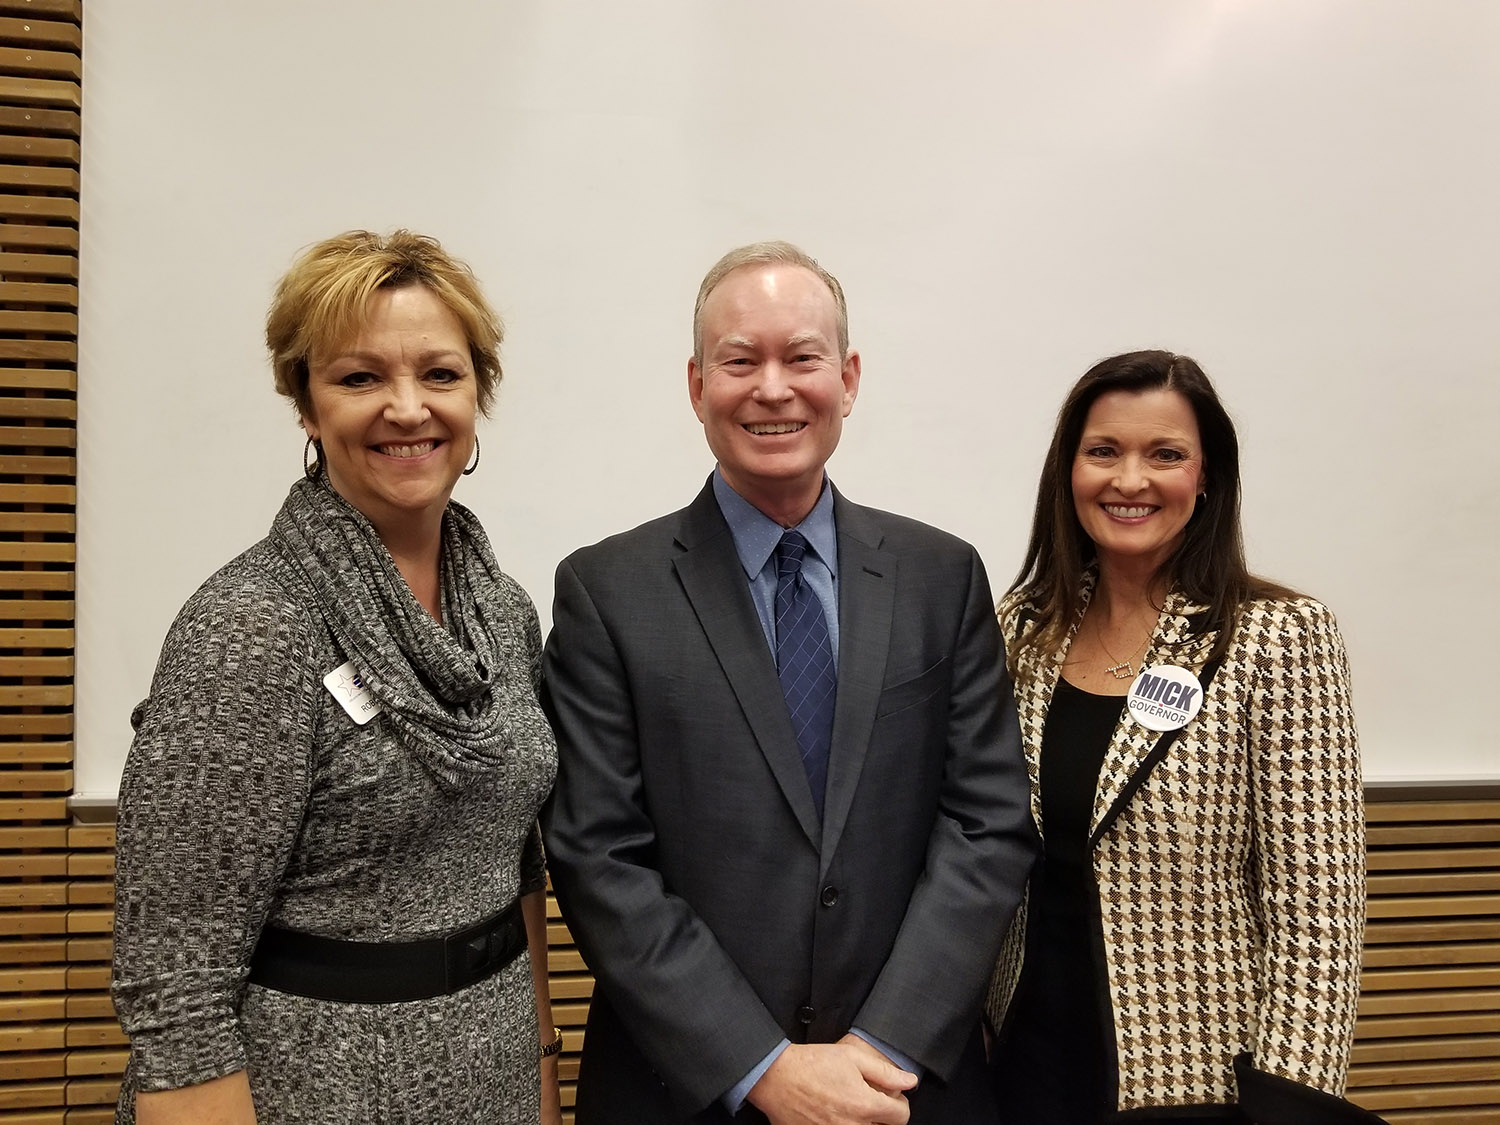 1st VP Robin Walker with February's speaker, Mayor Mick Cornett and his wife.